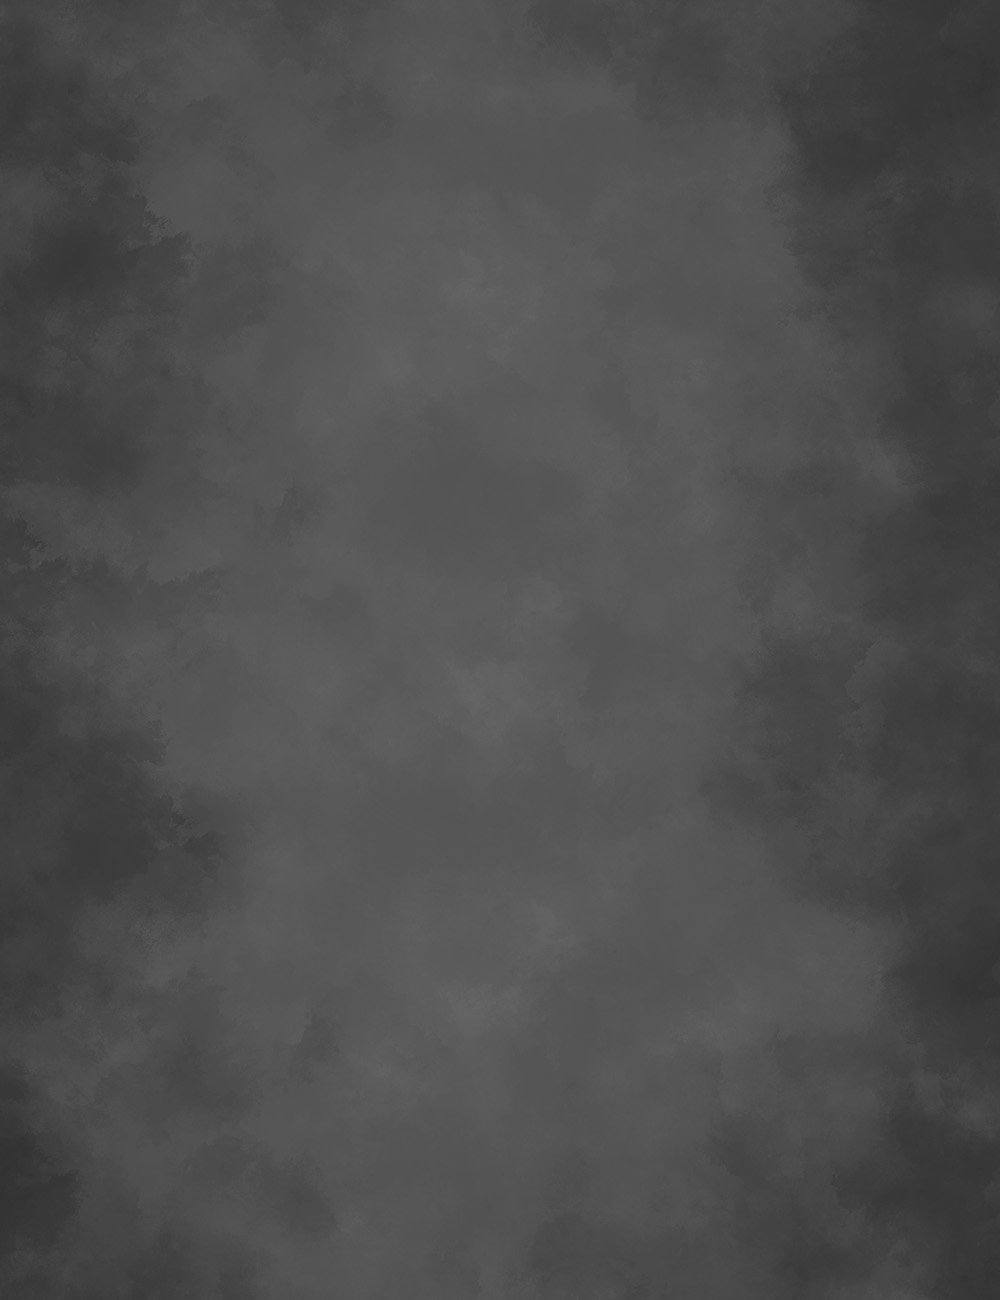 Abstract Painted Old Master Canvas Warm Black Texture Backdrop - Shop Backdrop